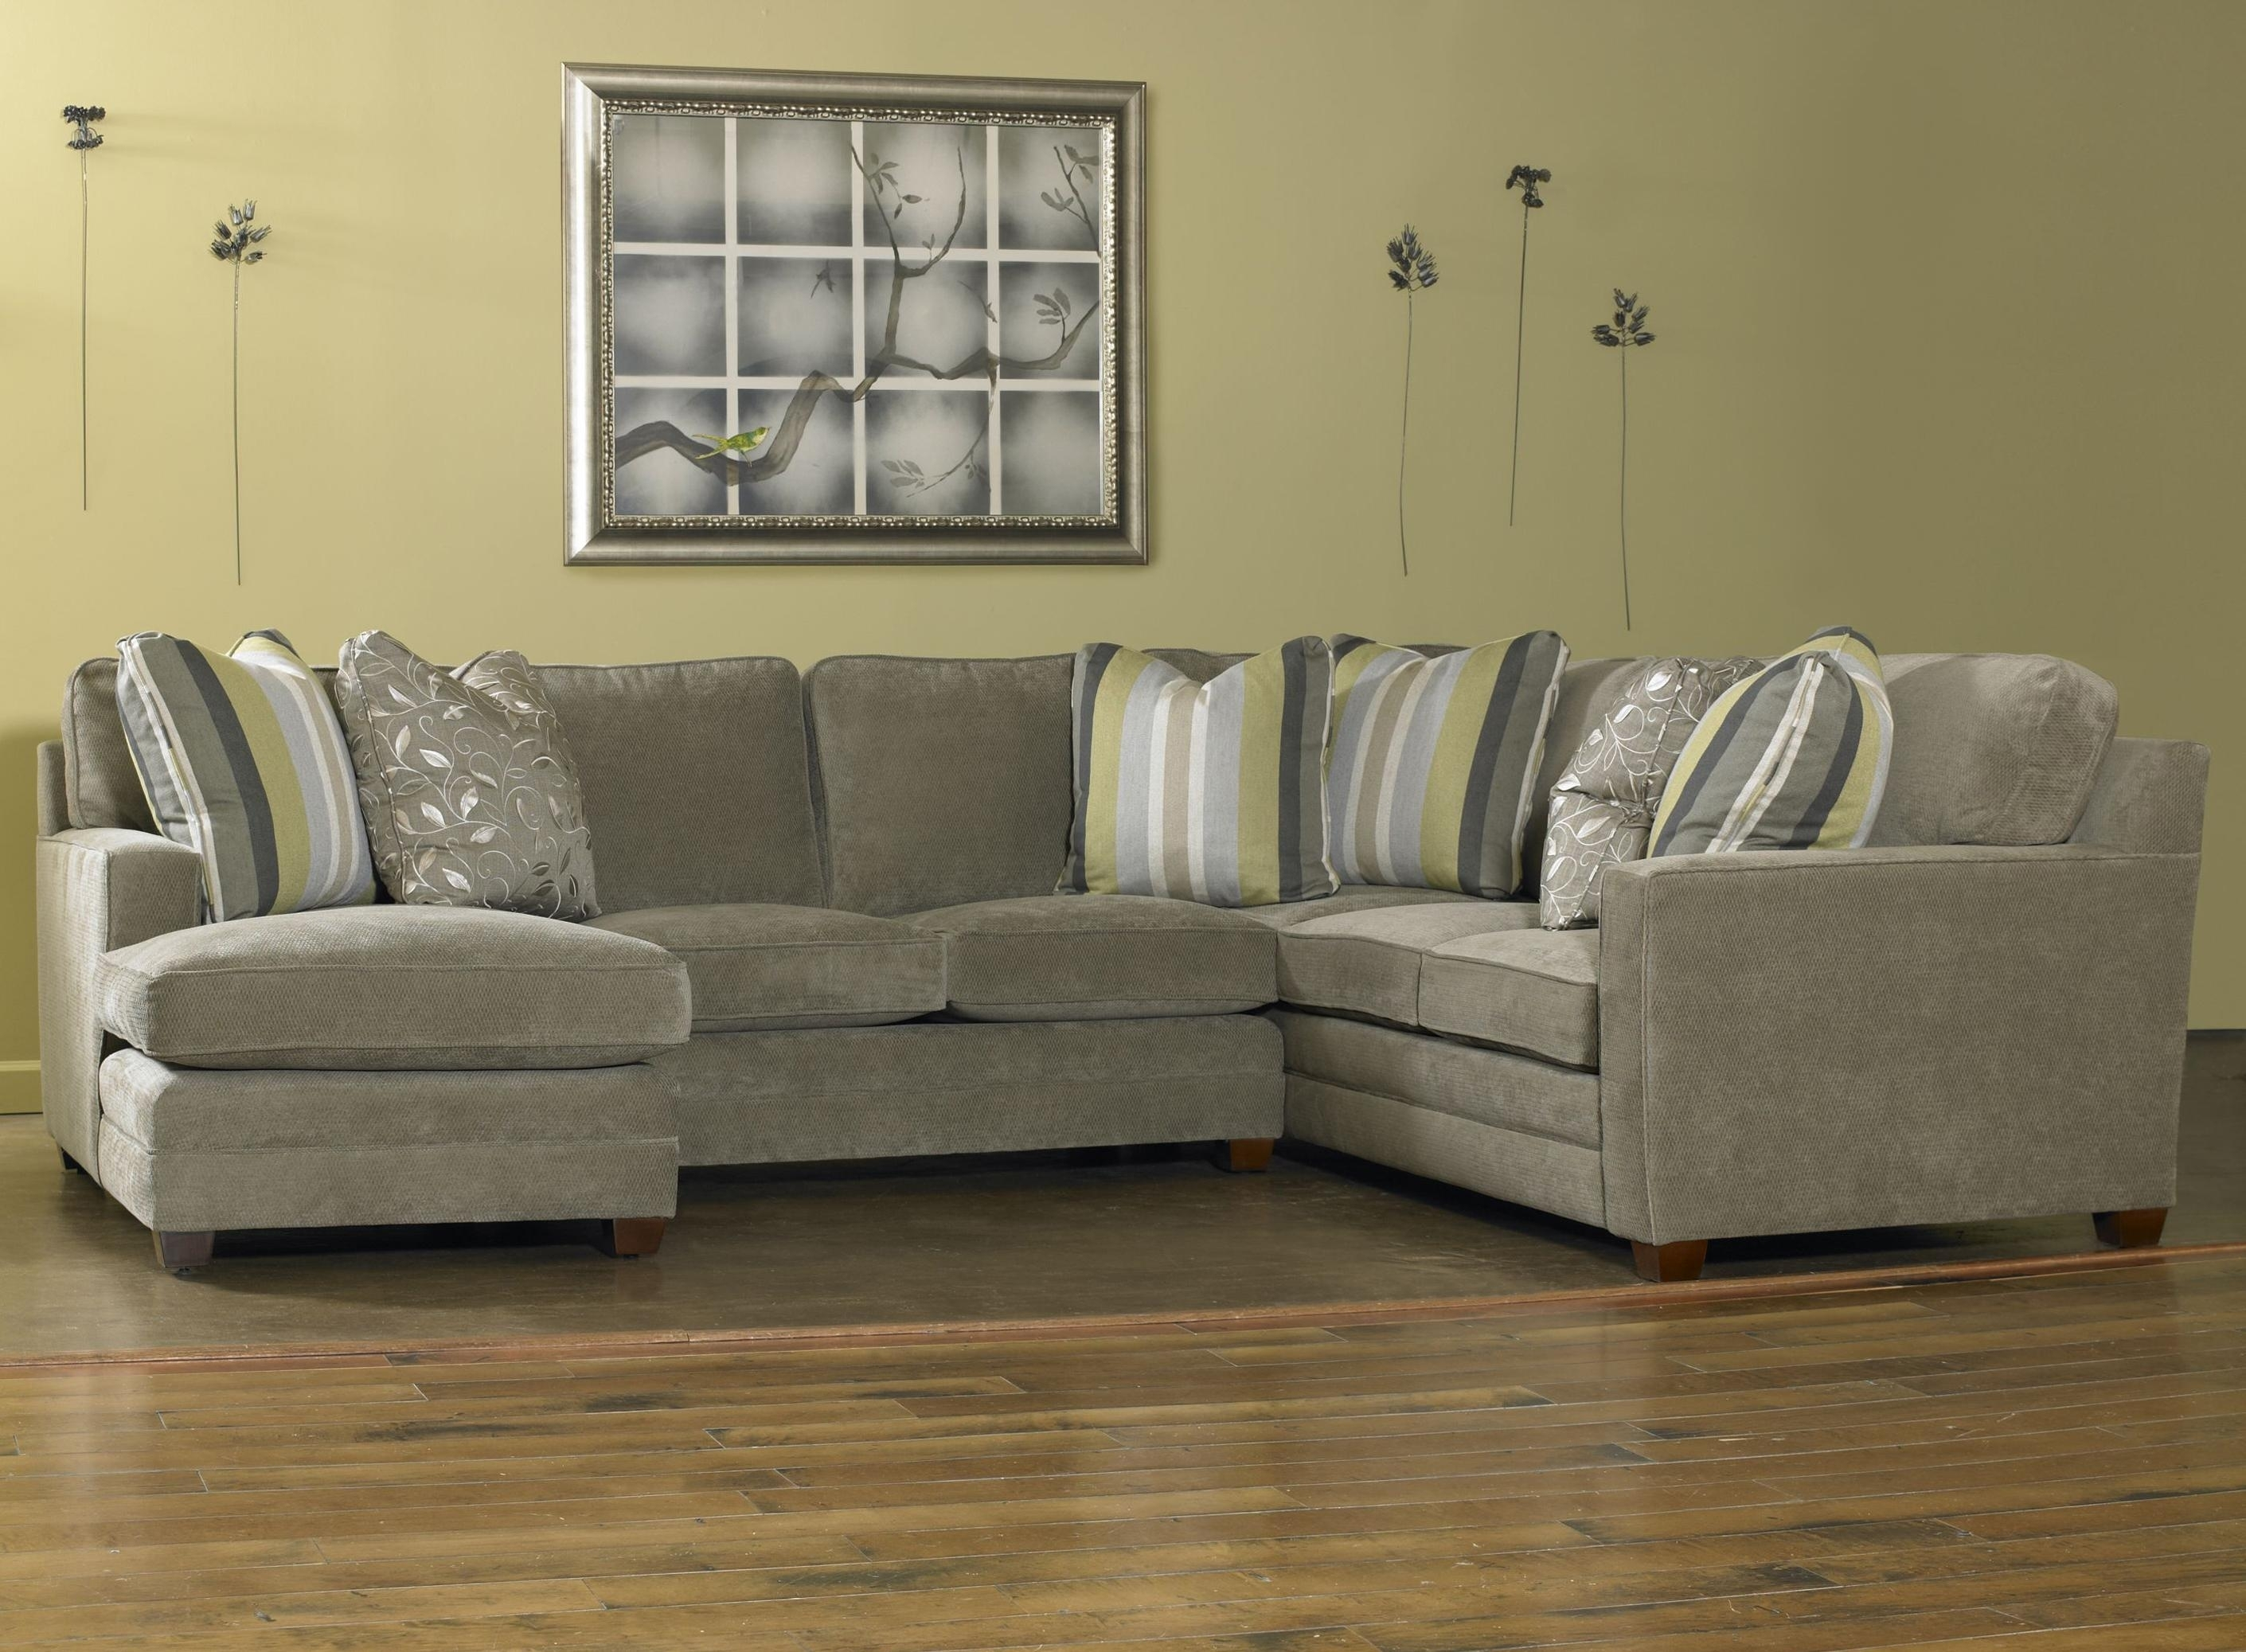 Sam's Club Leather Sectional Sofa • Leather Sofa For Sectional Sofas At Sam's Club (View 15 of 15)